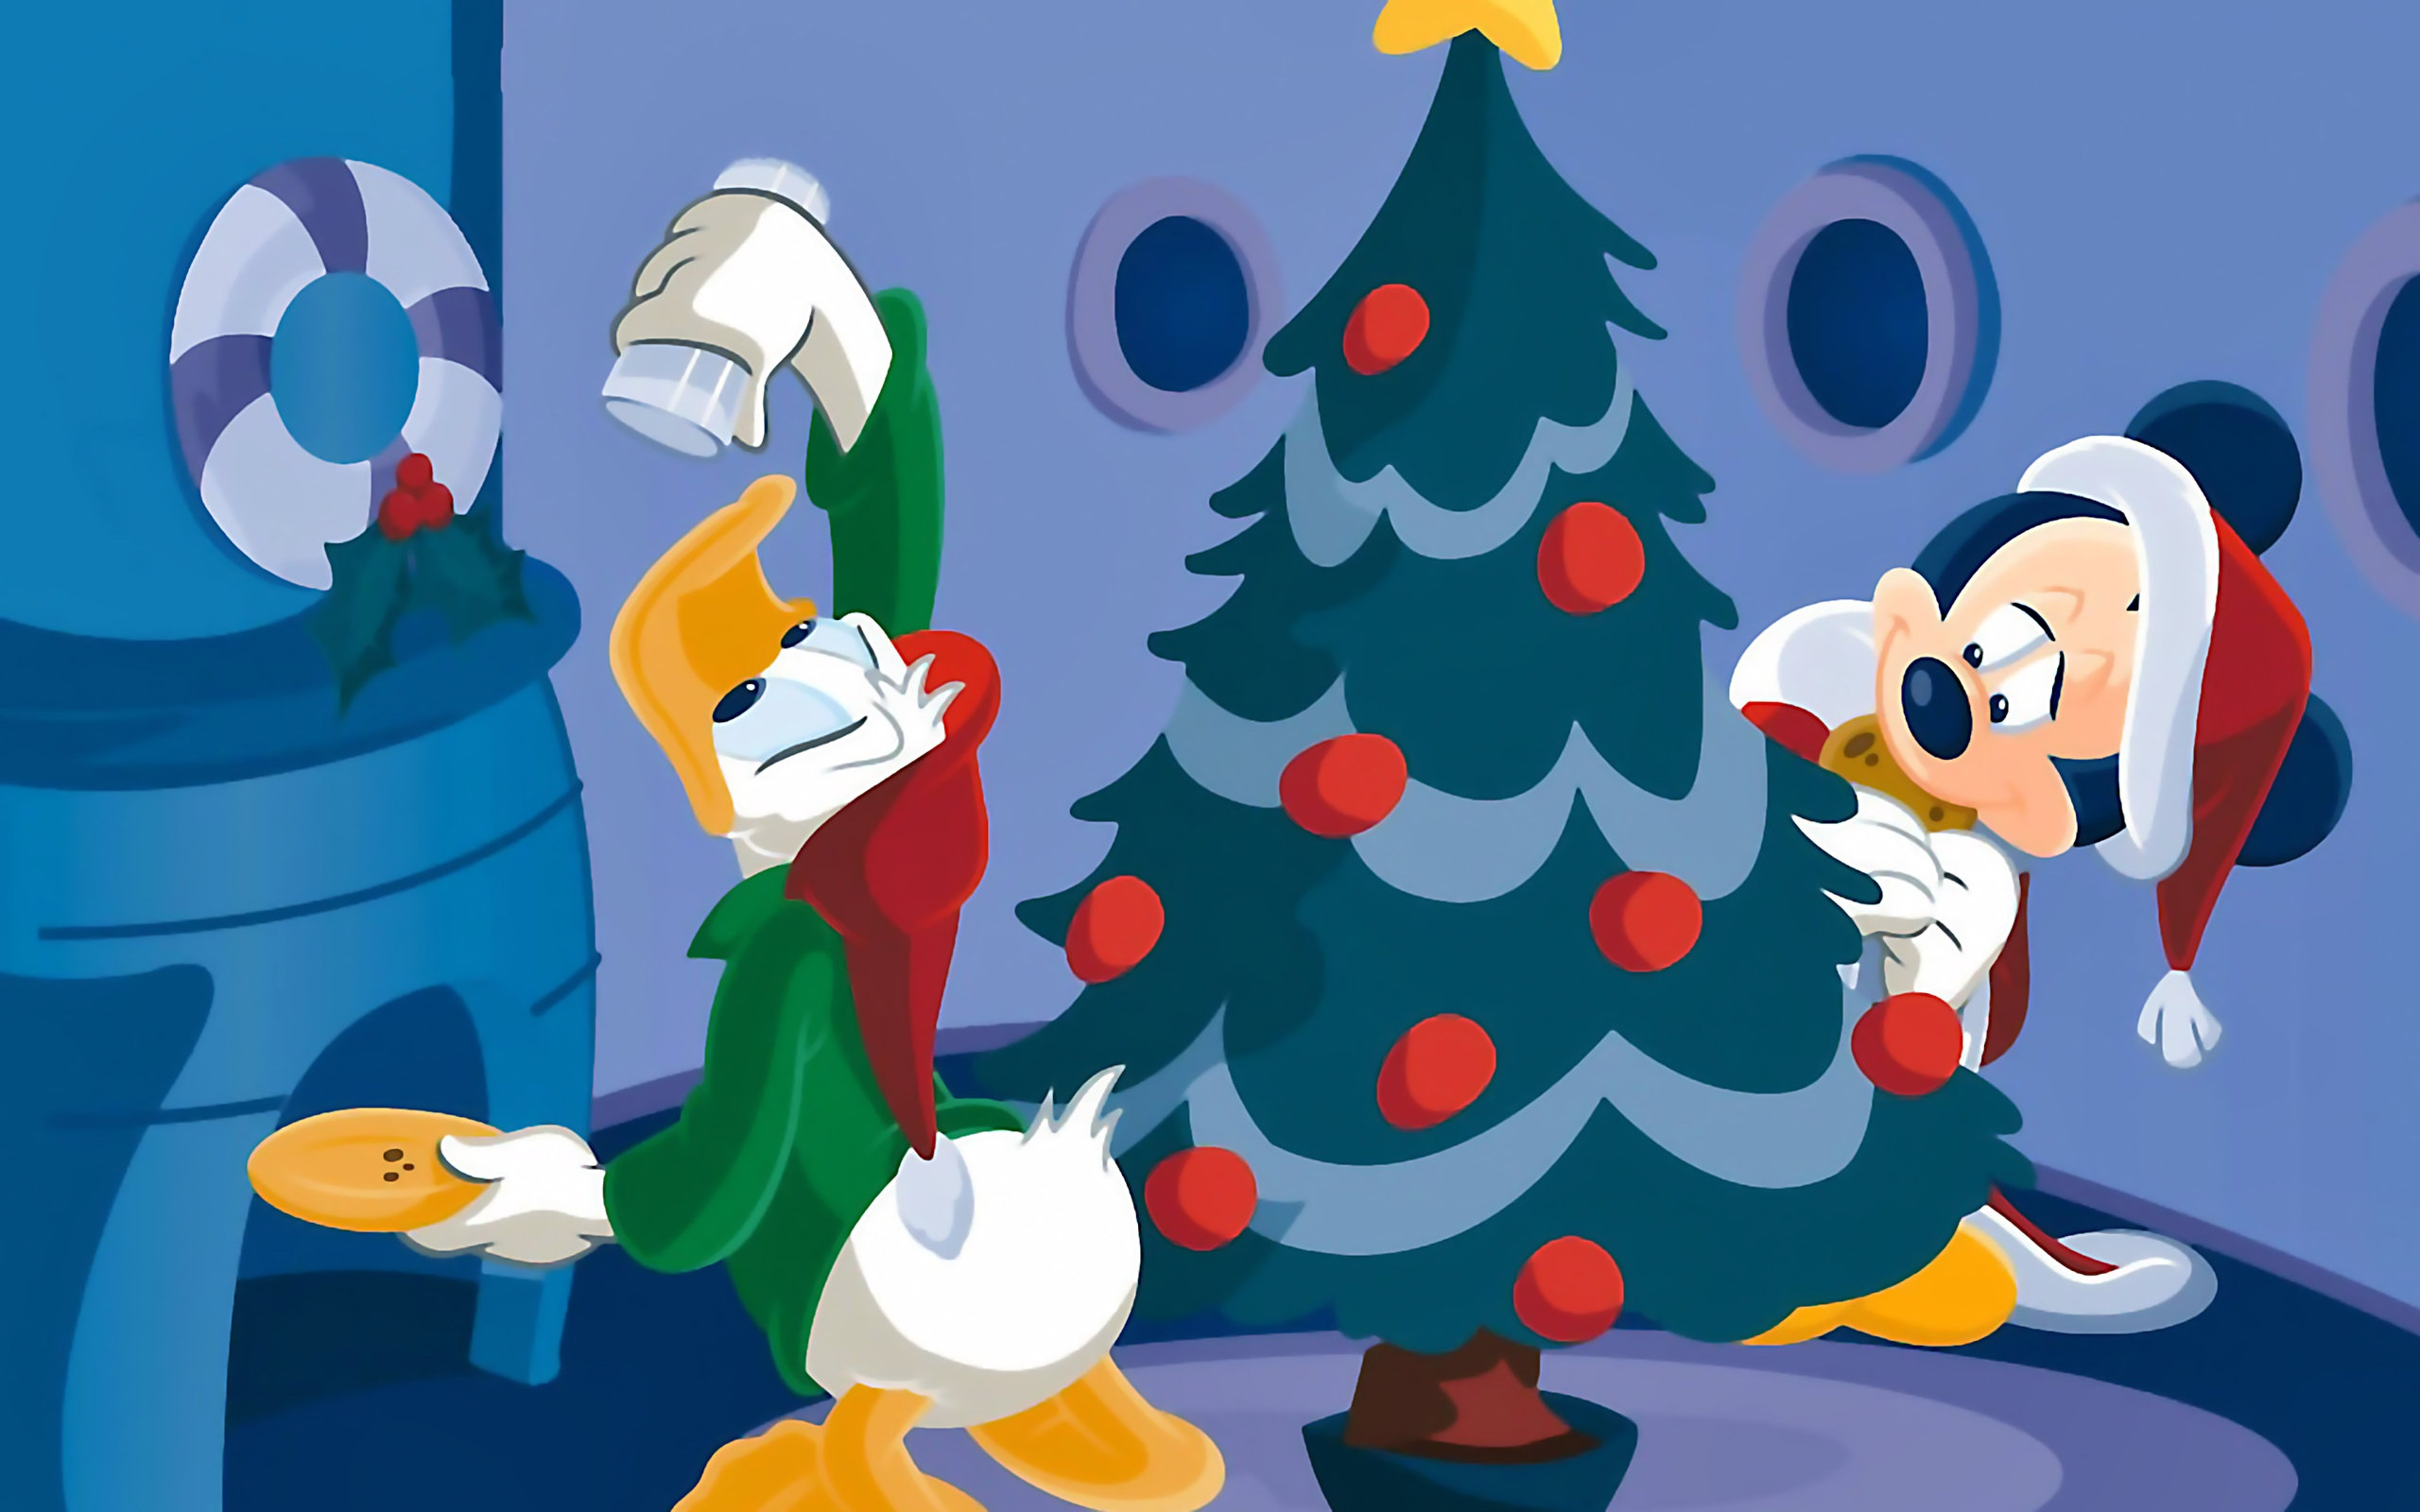 disney characters decorating a tree christmas wallpaper